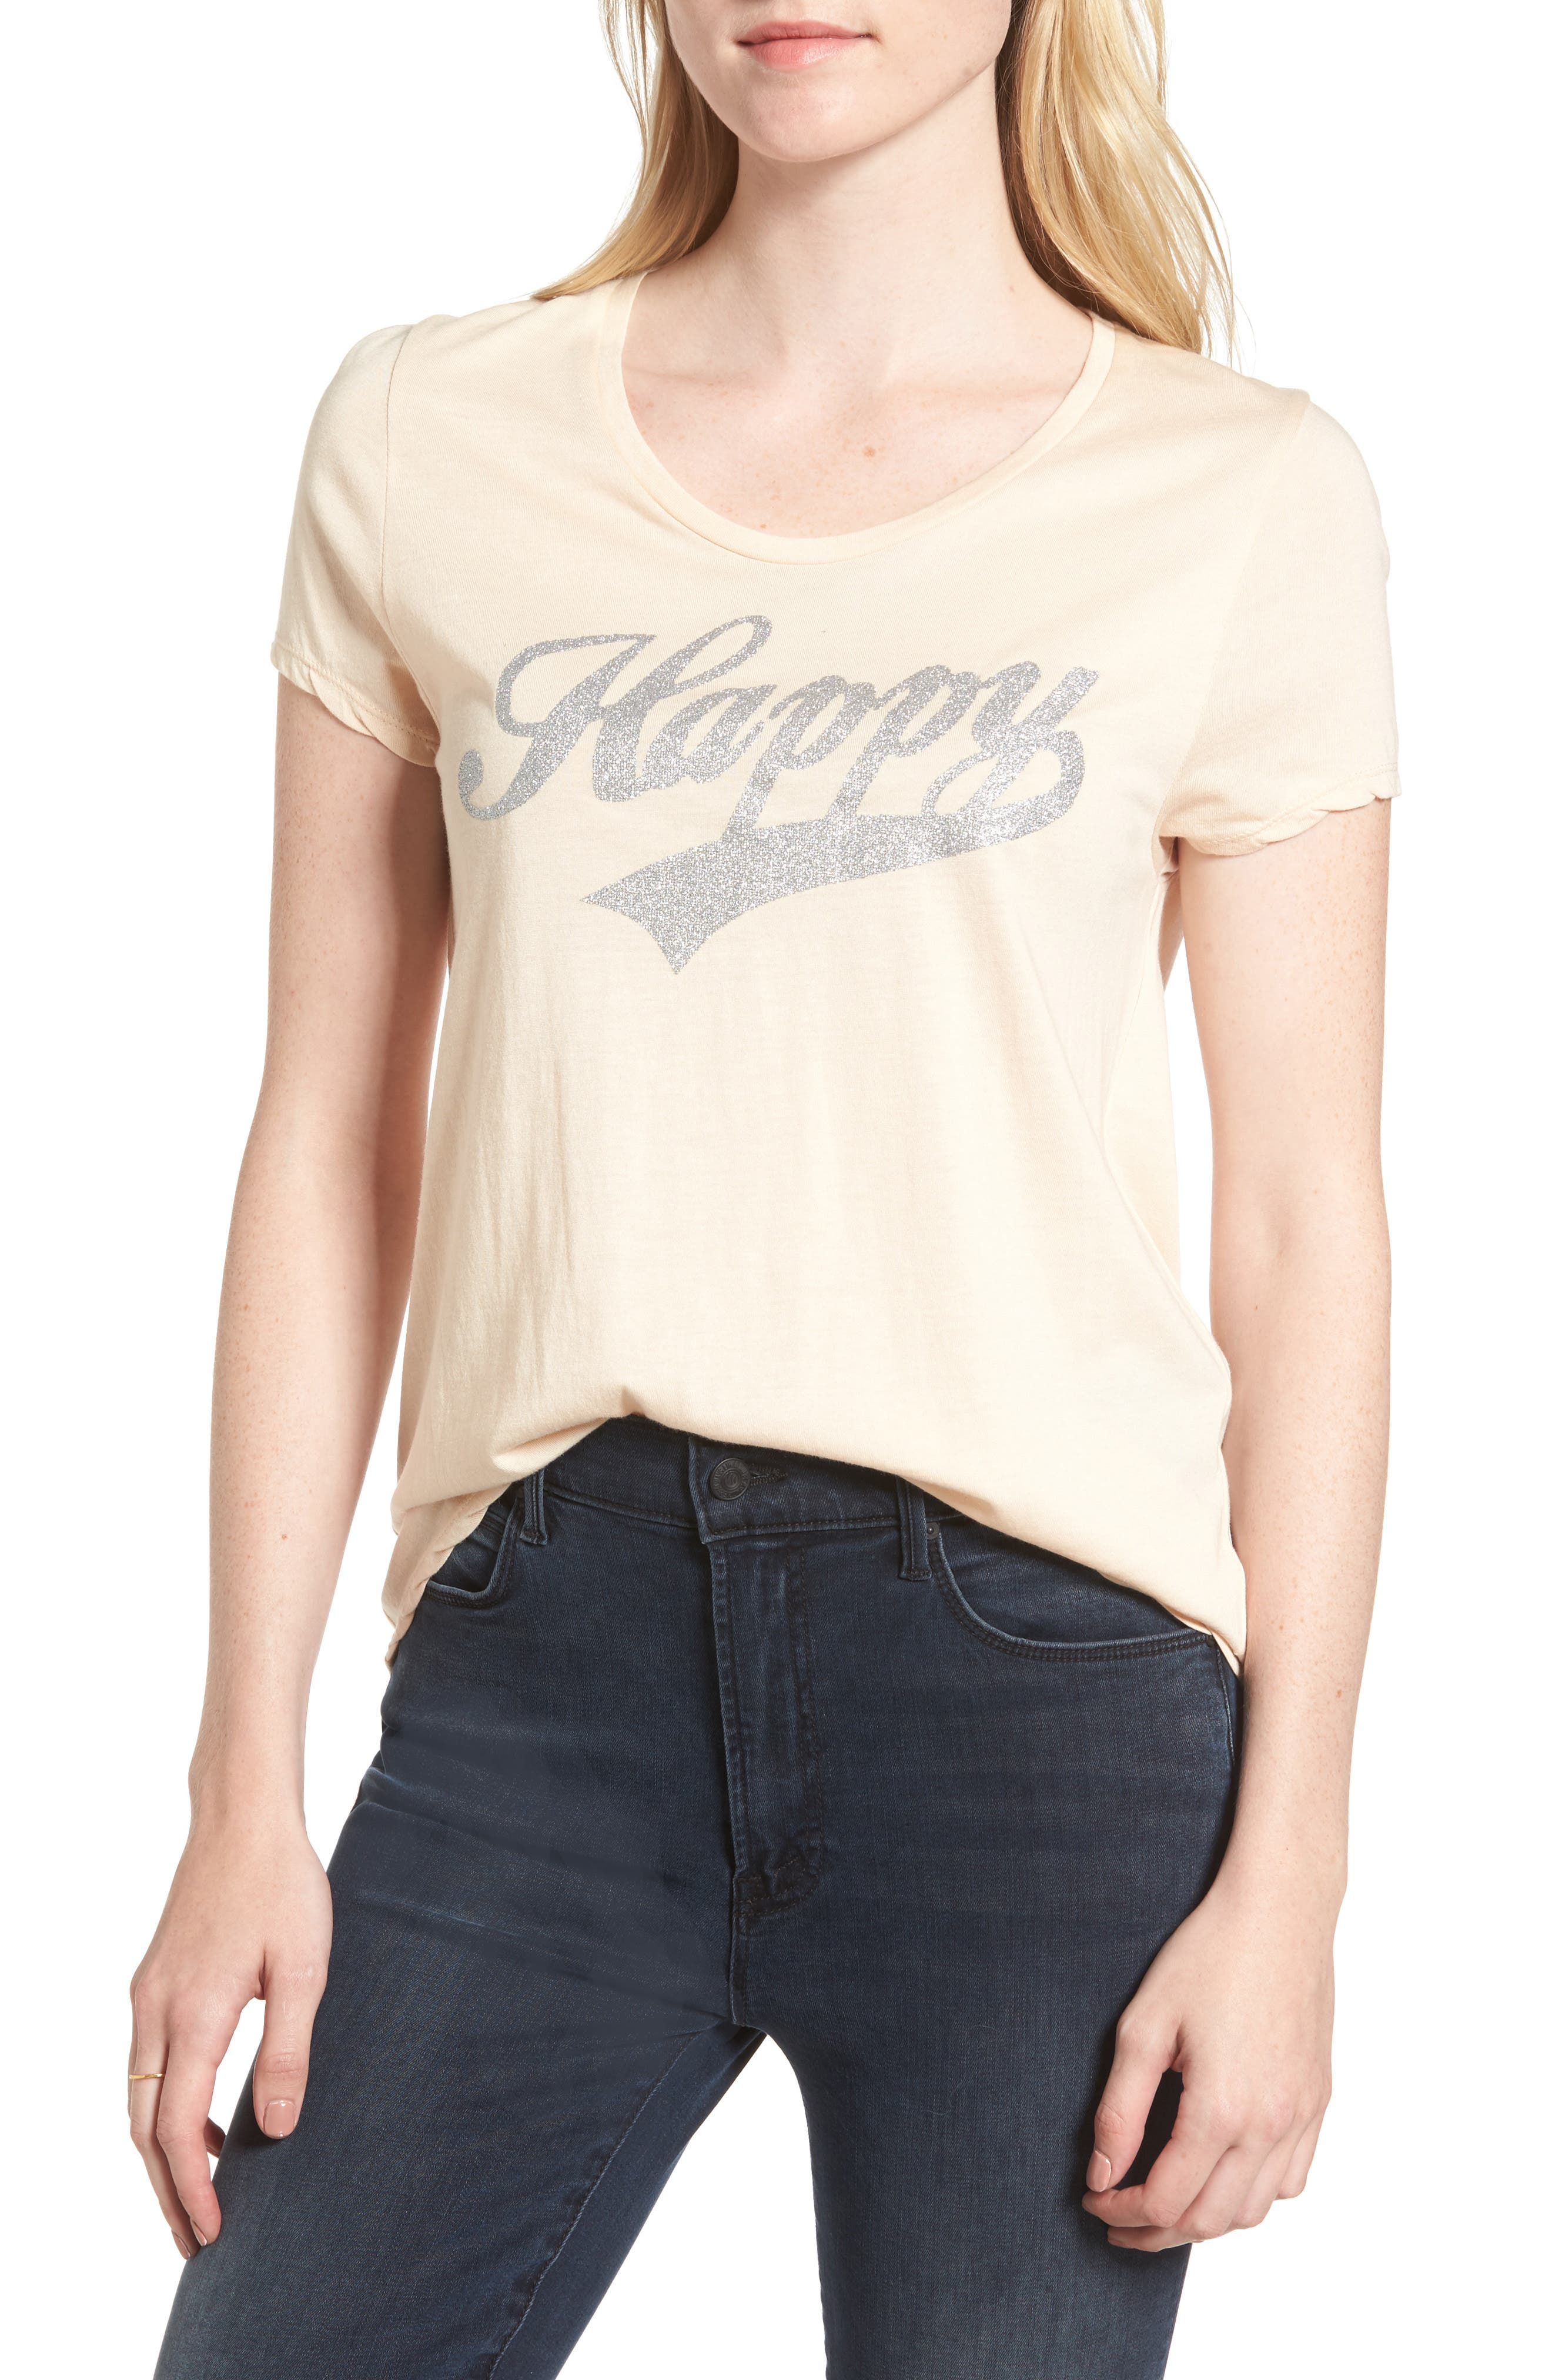 Zadig & Voltaire Happy Graphic Tee